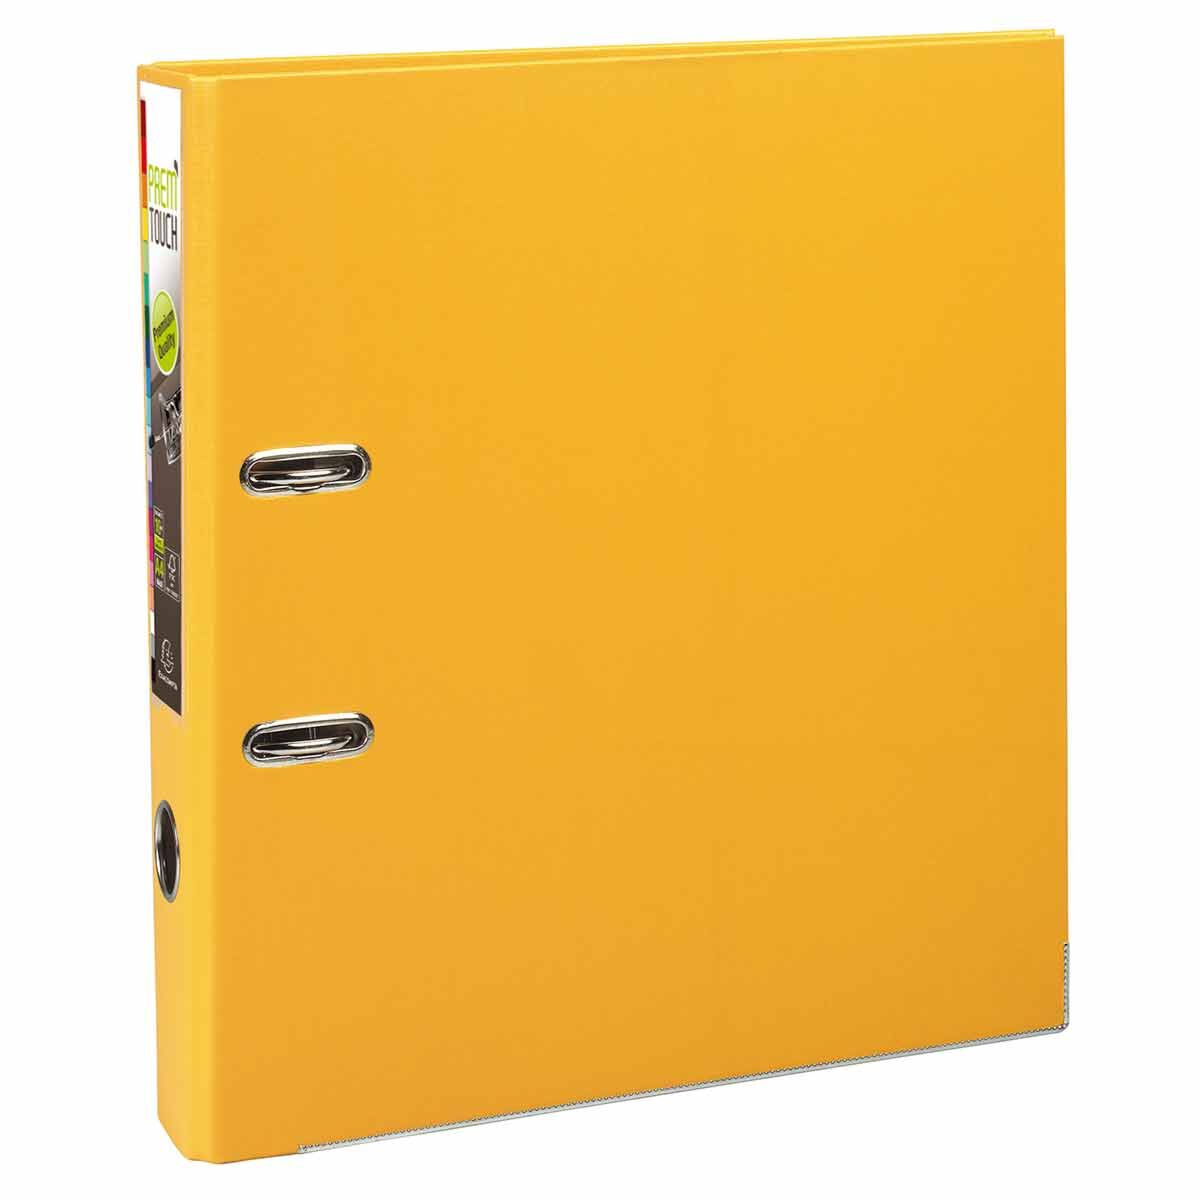 Exacompta PremTouch Lever Arch File A4 Plus PP 50mm Pack of 10 Yellow